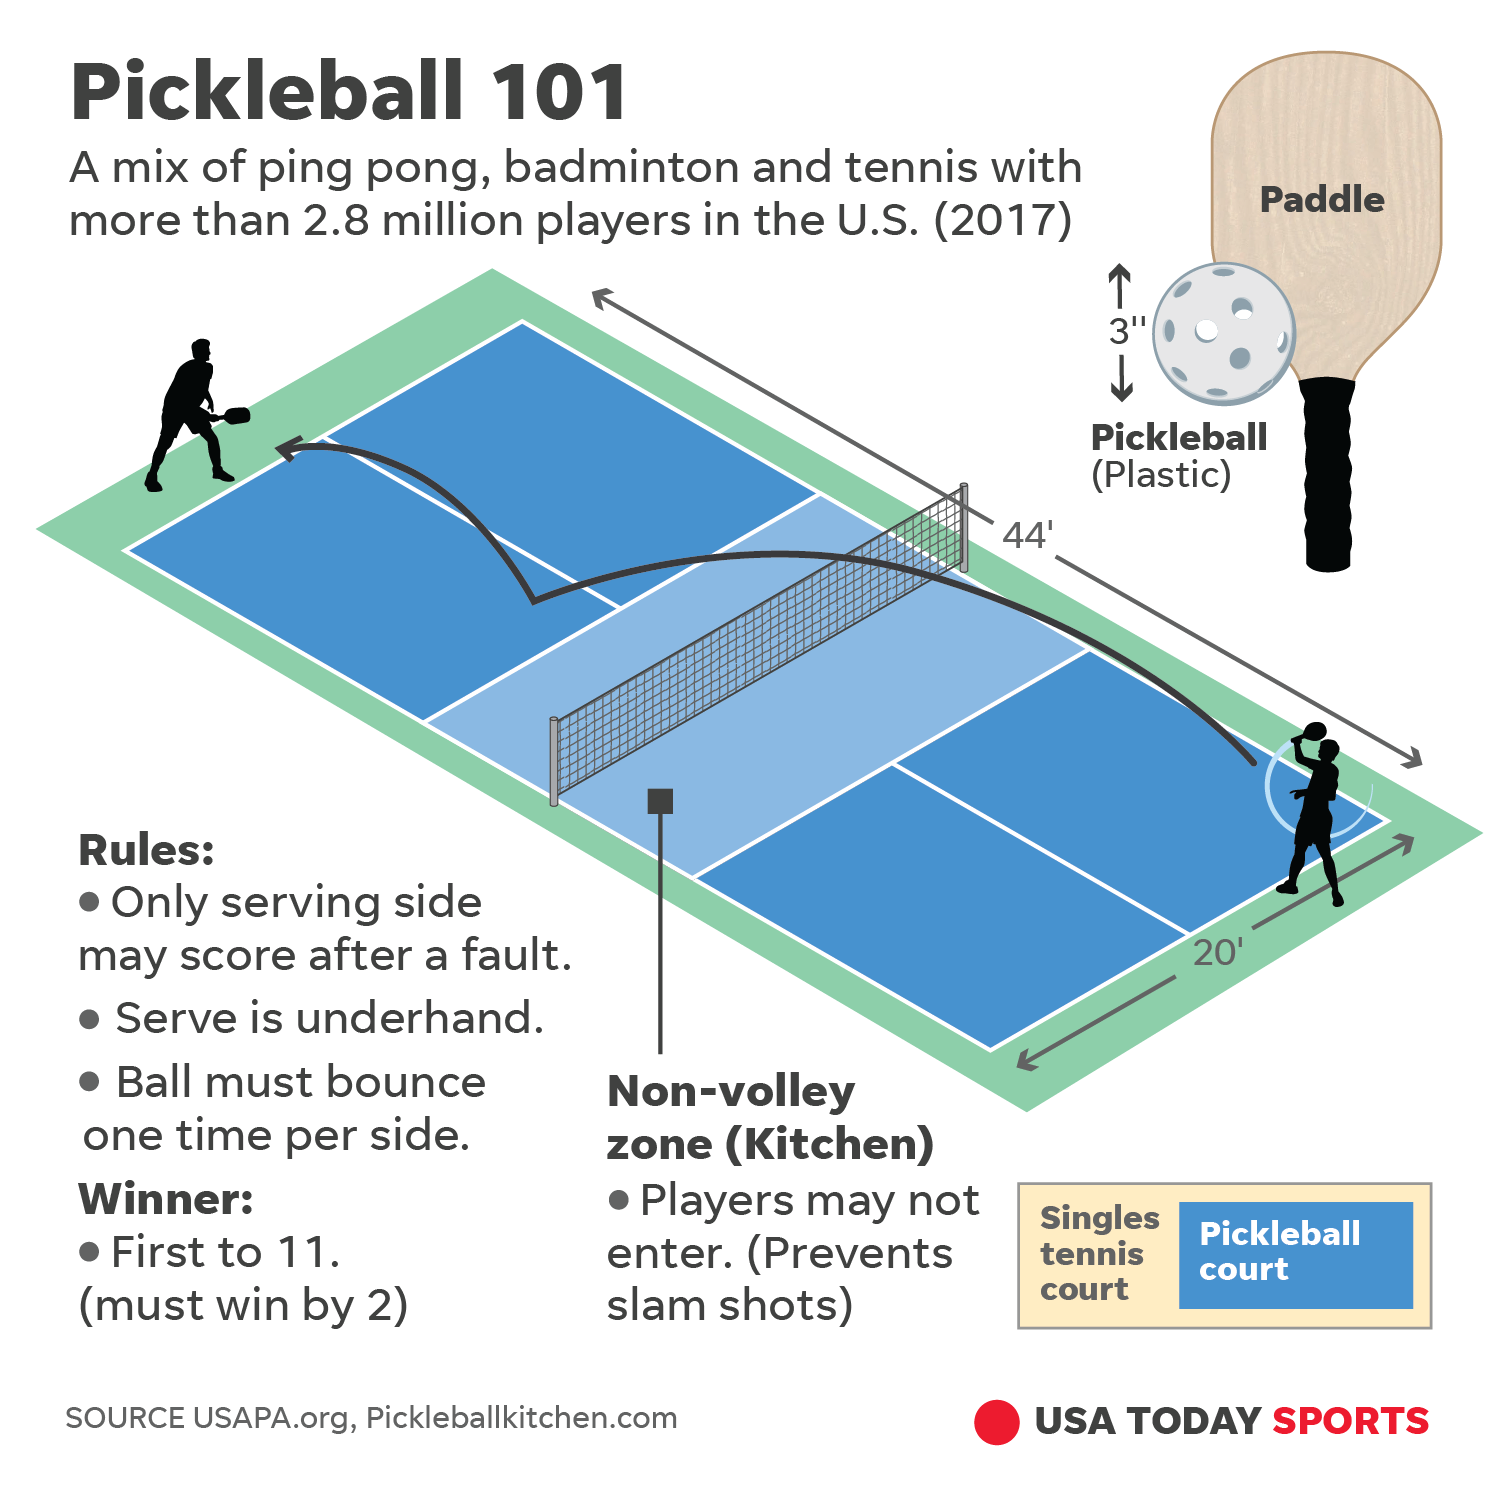 Pickleball players with St. George roots share why they love the game